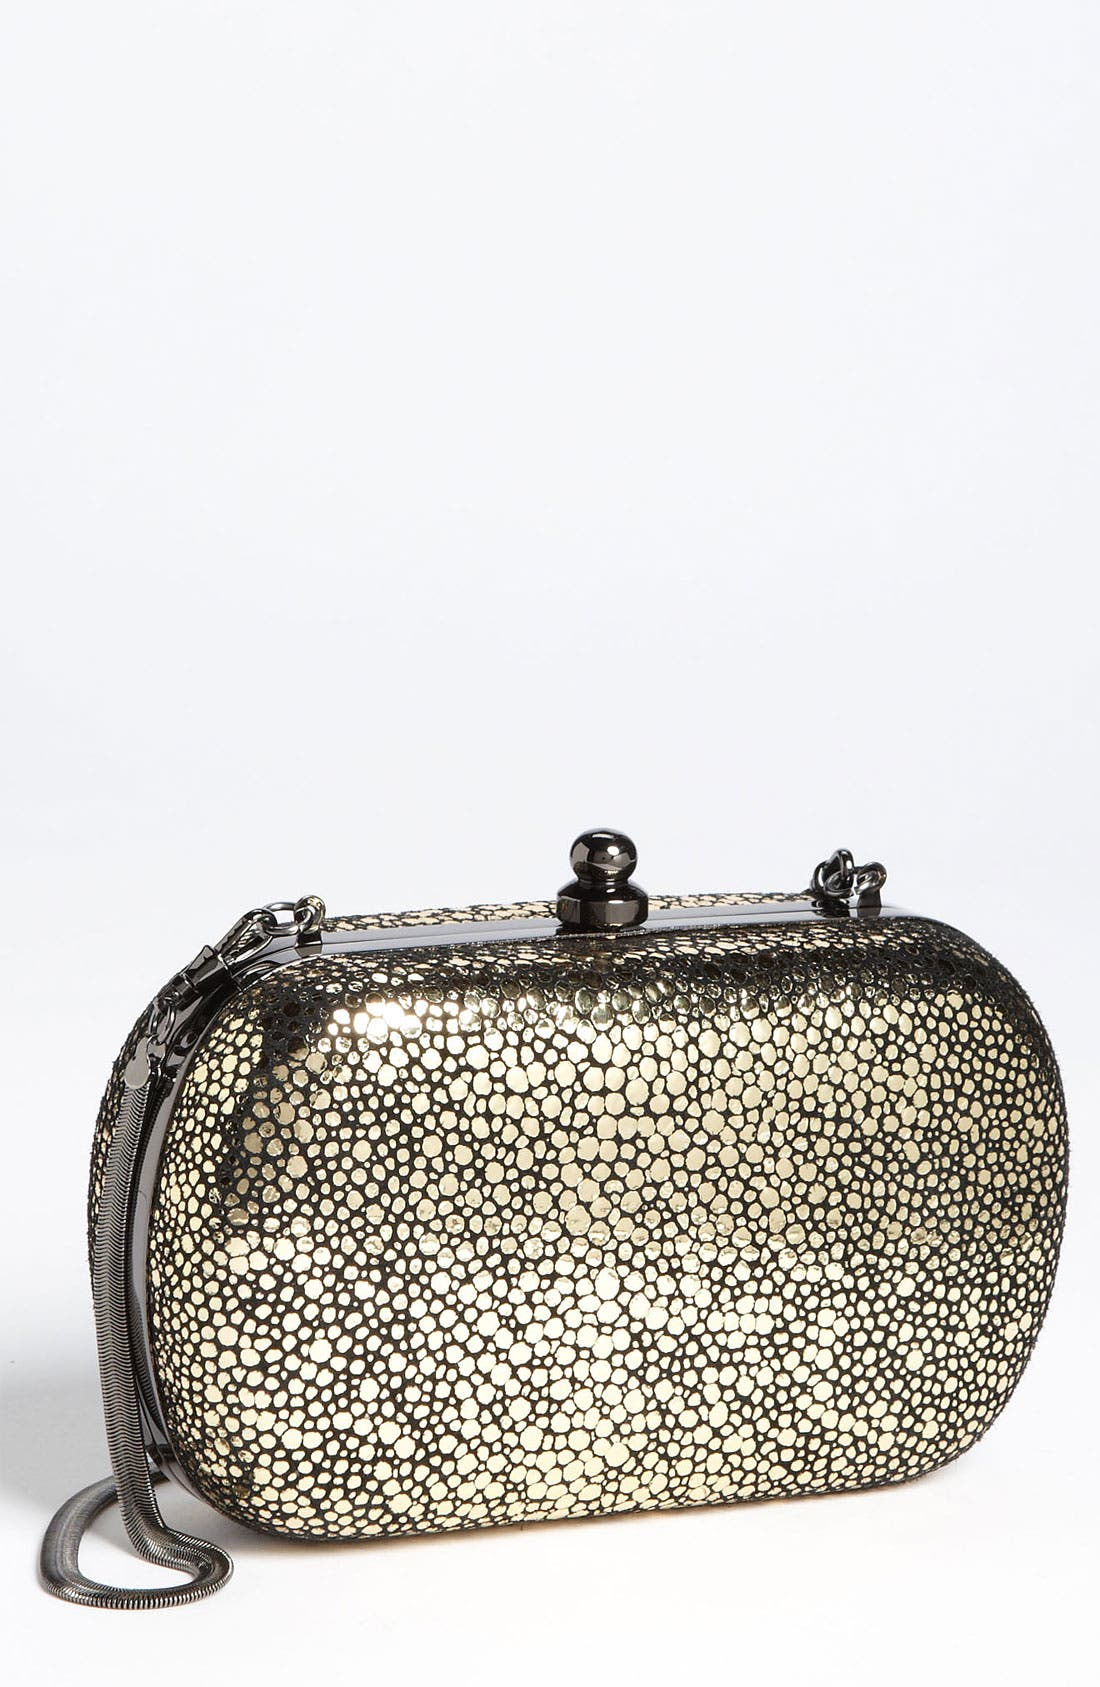 Alternate Image 1 Selected - Inge Christopher Metallic Stingray Embossed Clutch